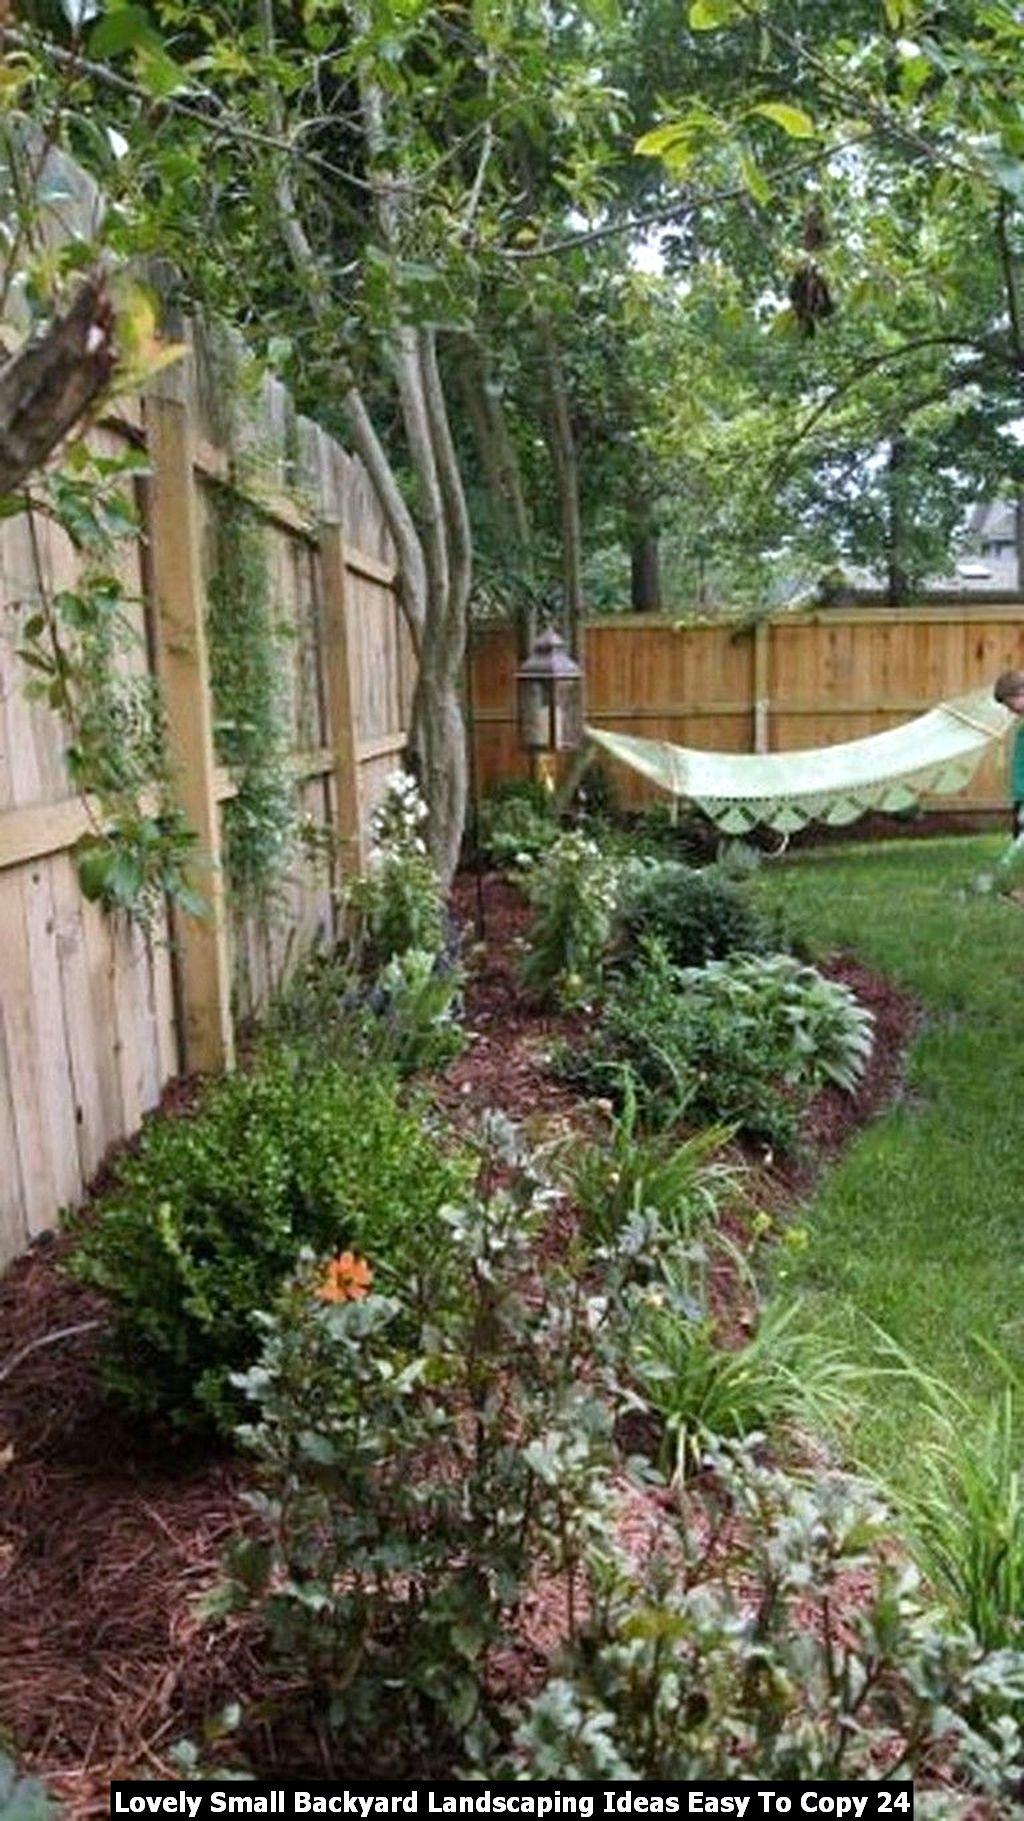 Lovely Small Backyard Landscaping Ideas Easy To Copy 24